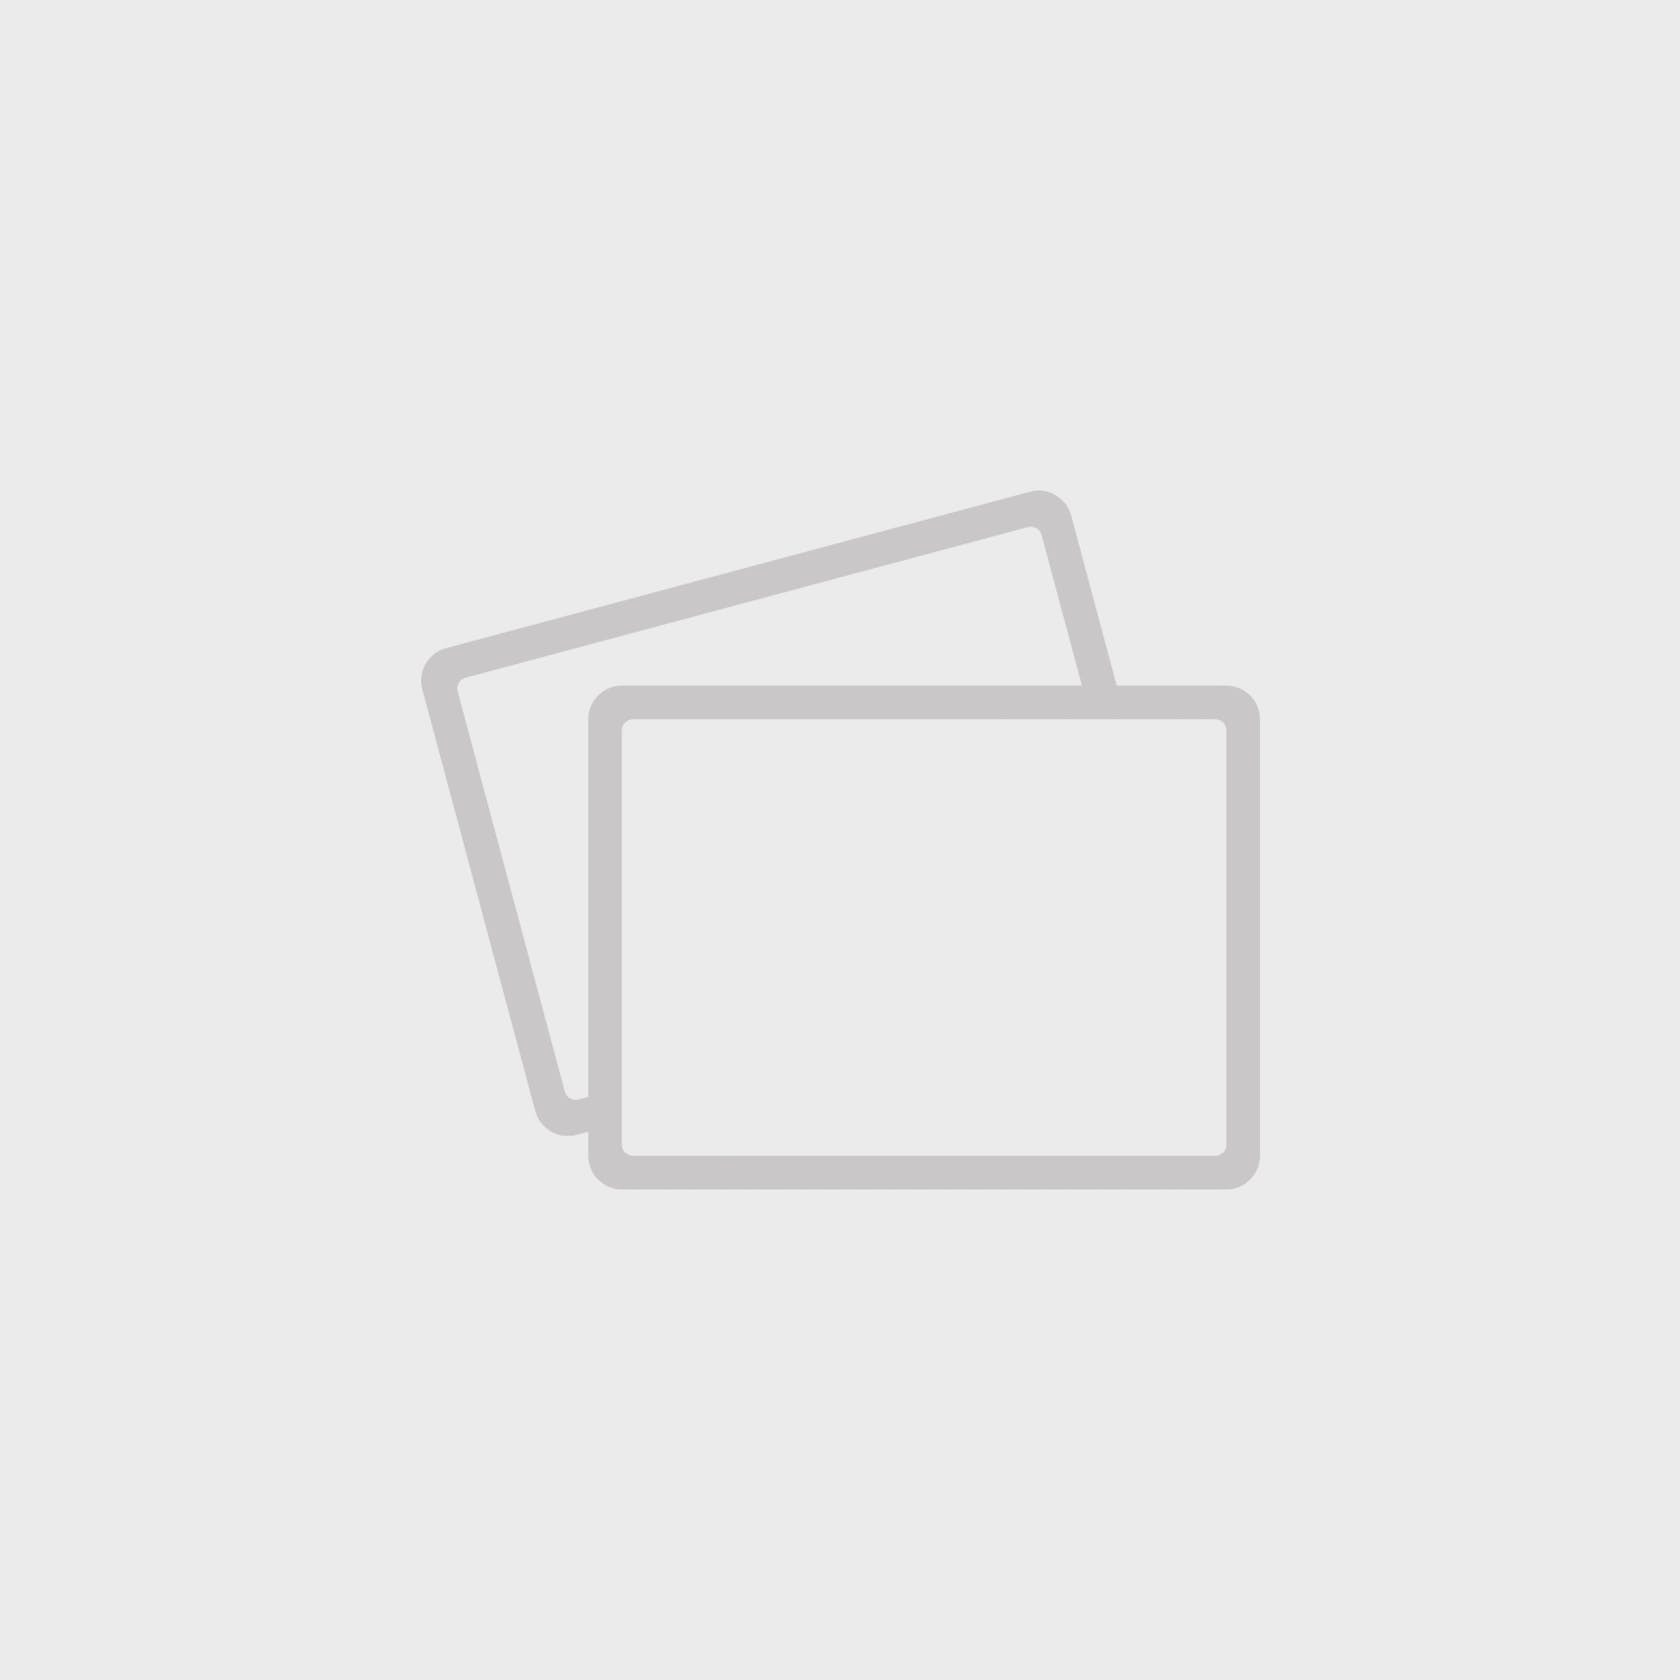 FLOORLIFE KENSINGTON COLLECTION ANTIQUE OAK 5388182219 ( AMBIANT SARENZA ANTIQUE OAK )